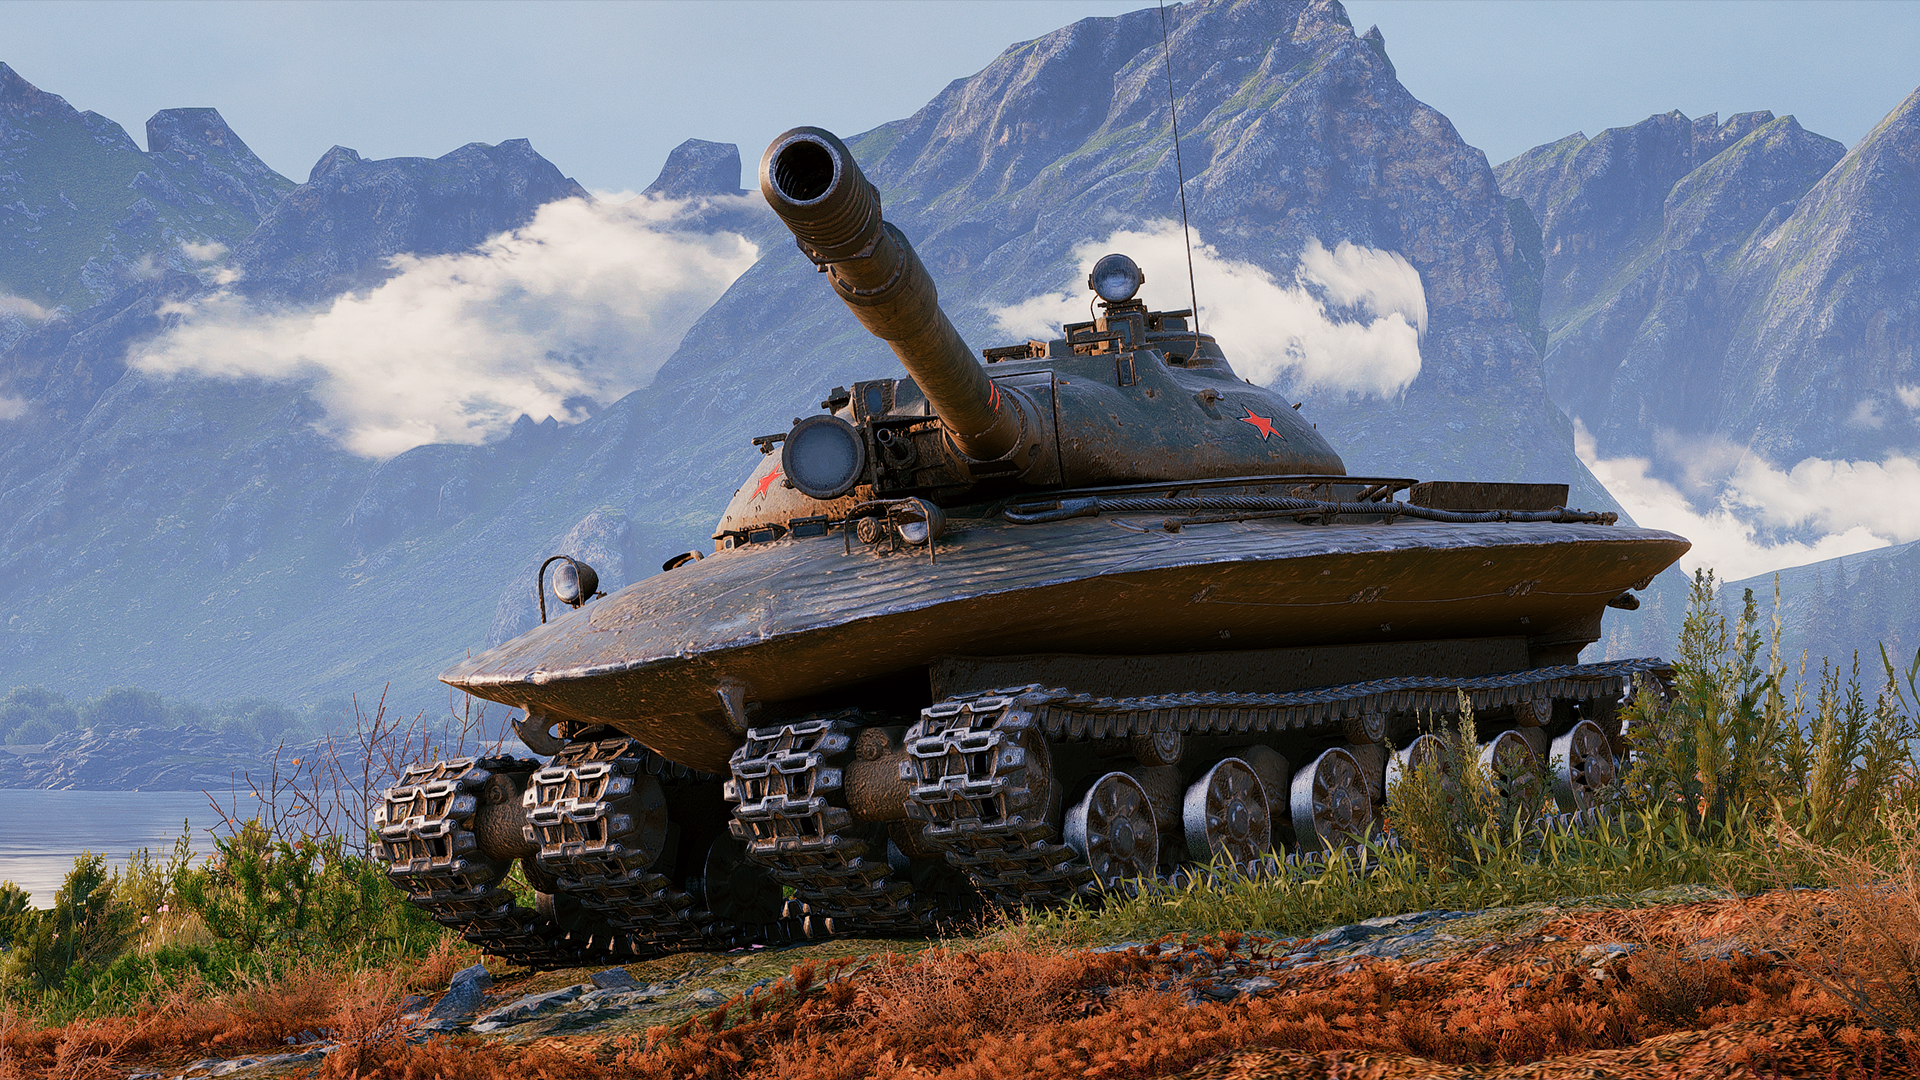 World of Tanks: Object 279, Warrior of the Apocalypse